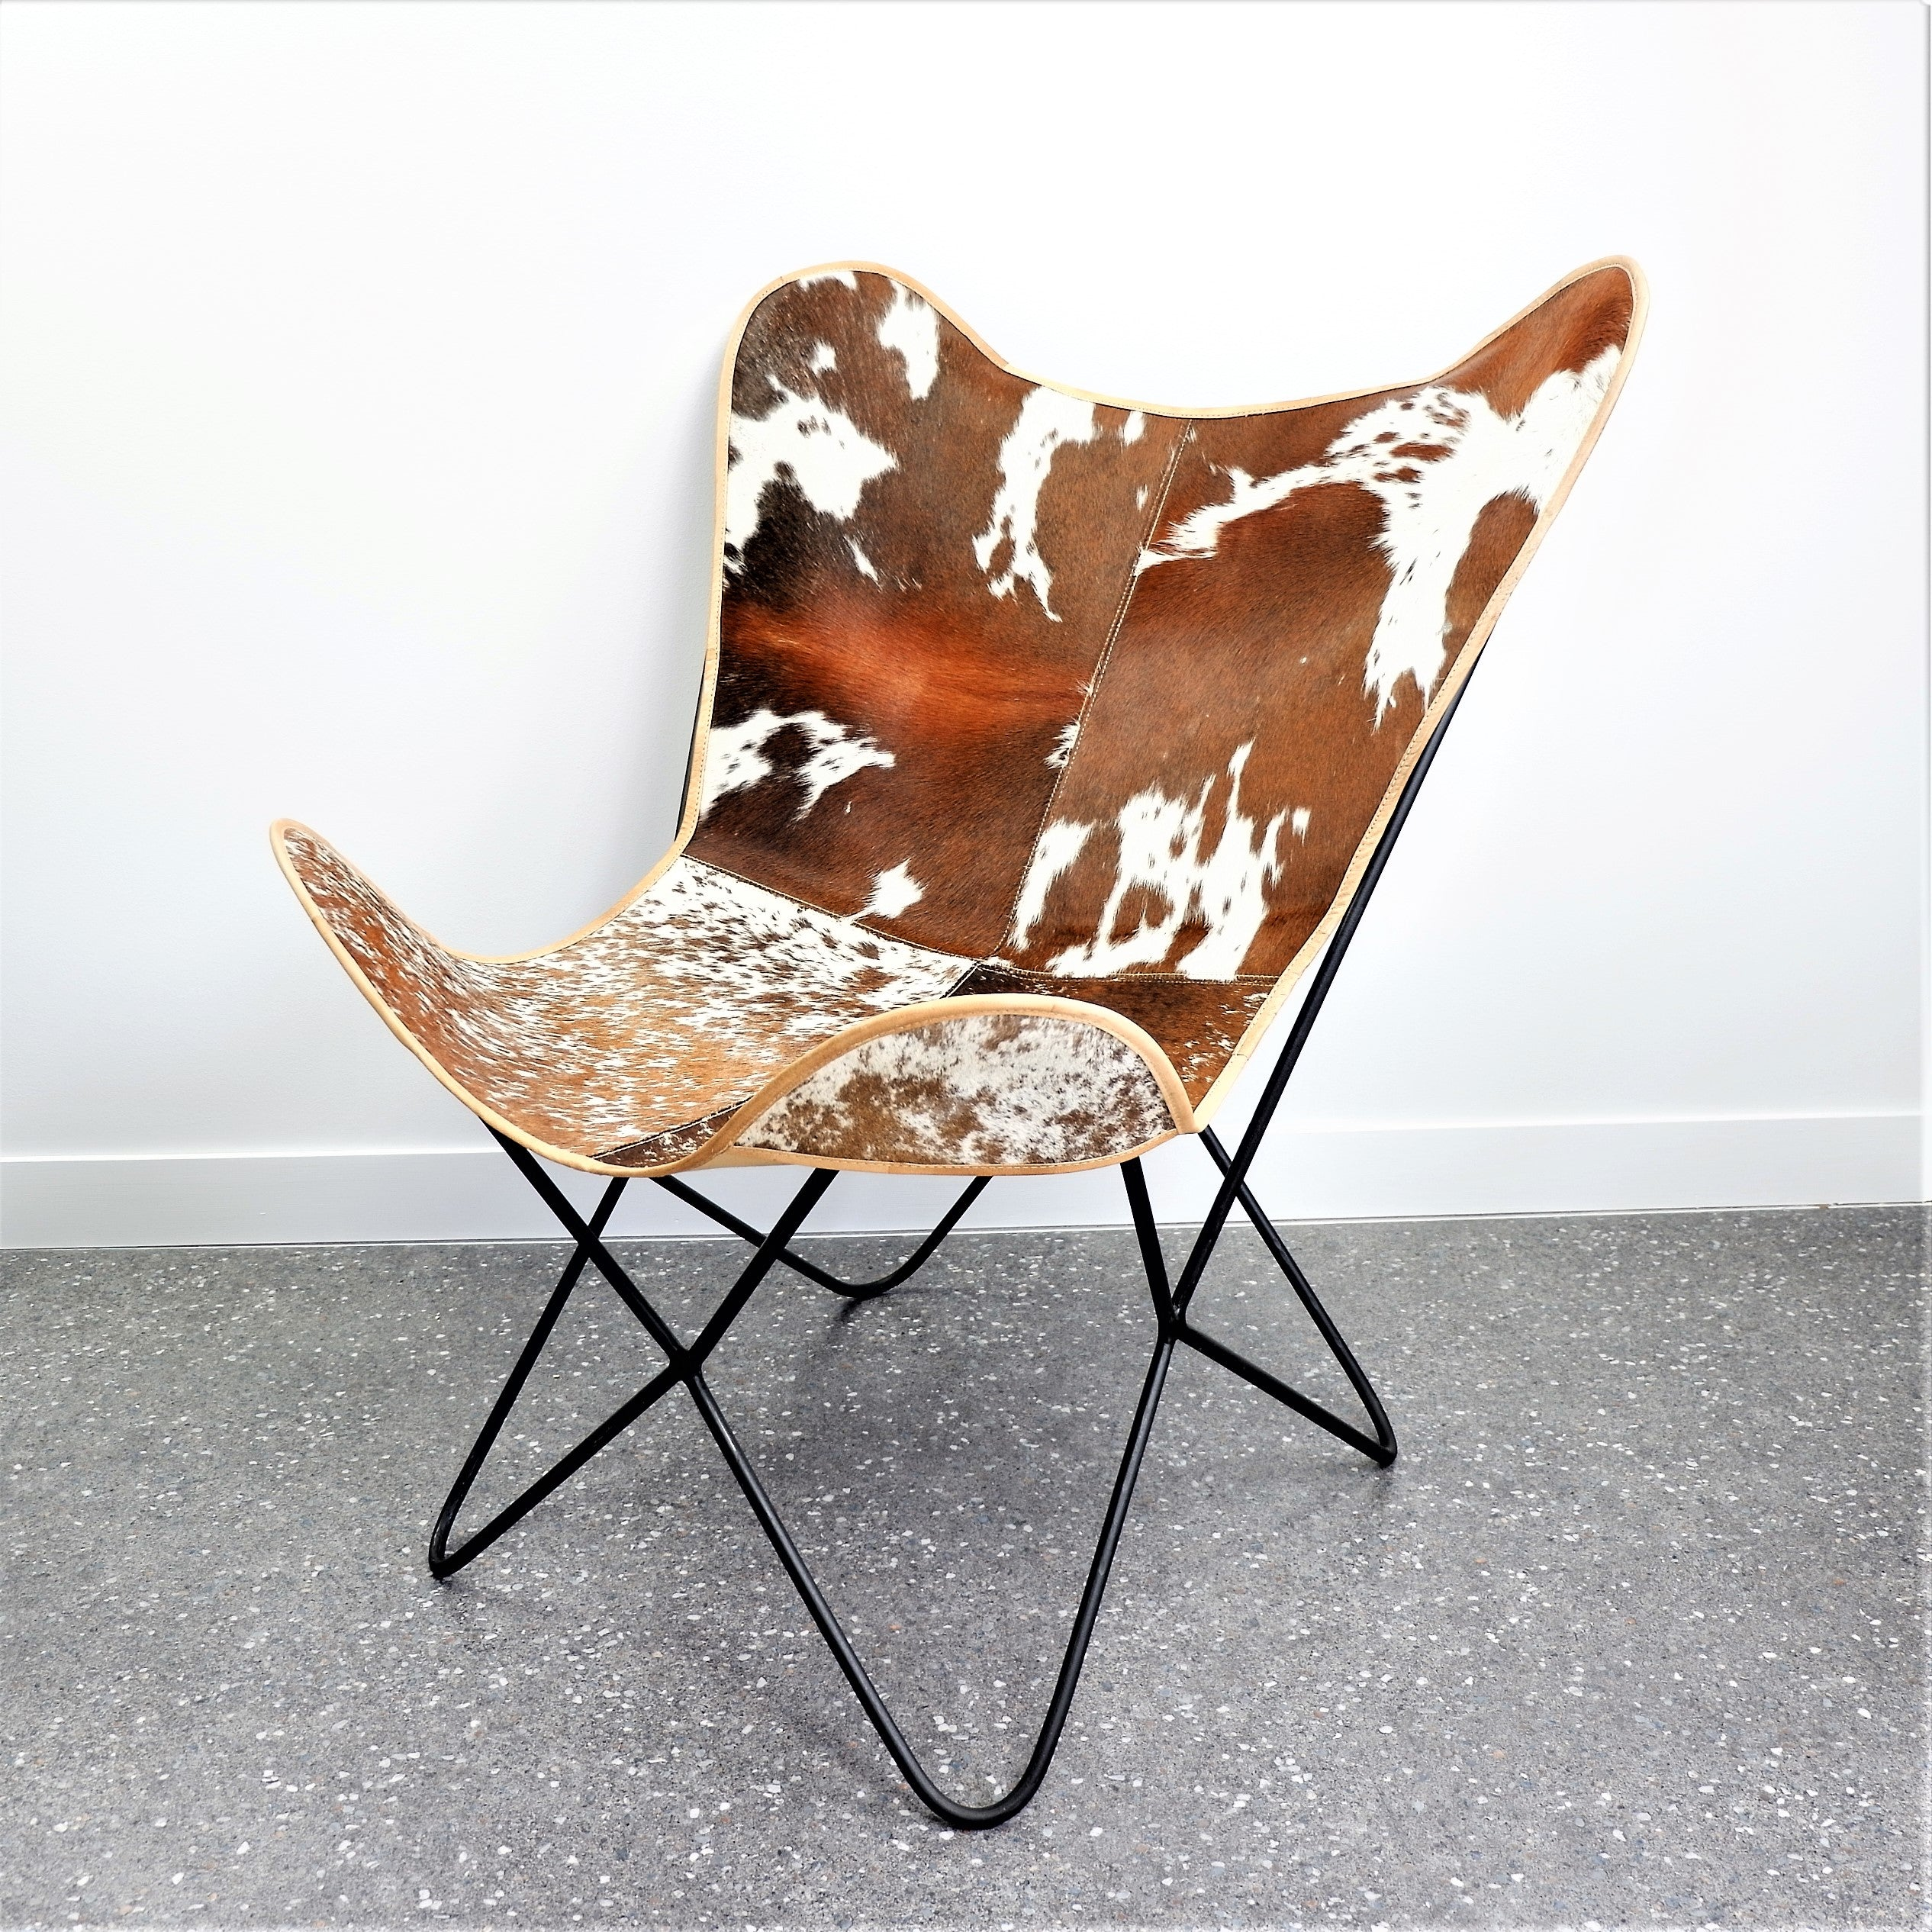 Miraculous Butterfly Cowhide Occasional Chair Brown White Newtique Squirreltailoven Fun Painted Chair Ideas Images Squirreltailovenorg